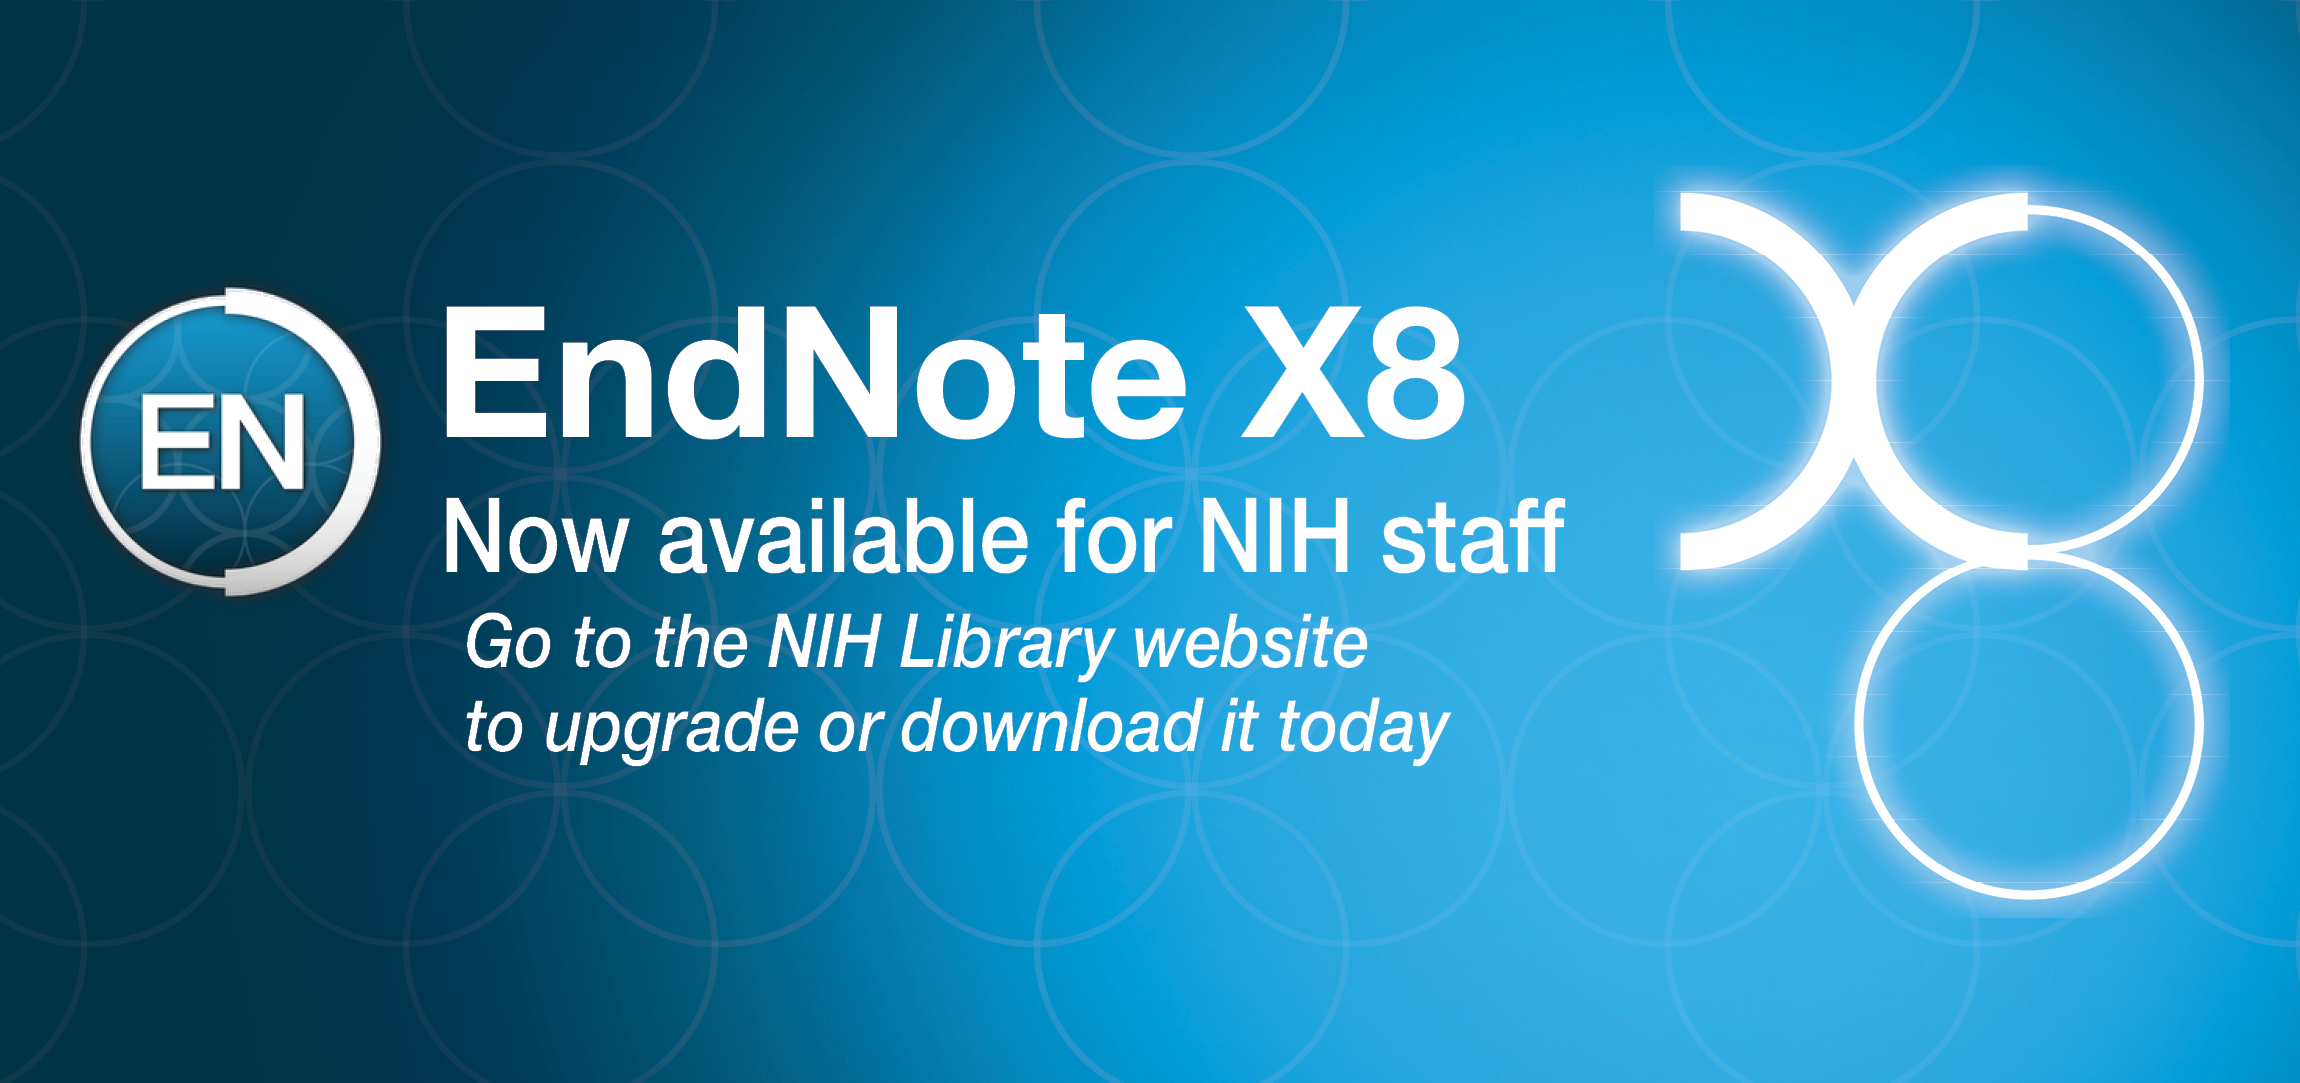 The Nih Library Is Making Endnote X8 Available To Nih Staff Through  December 31, 2017 This License Allows Anyone Directly Associated With Nih  To Download